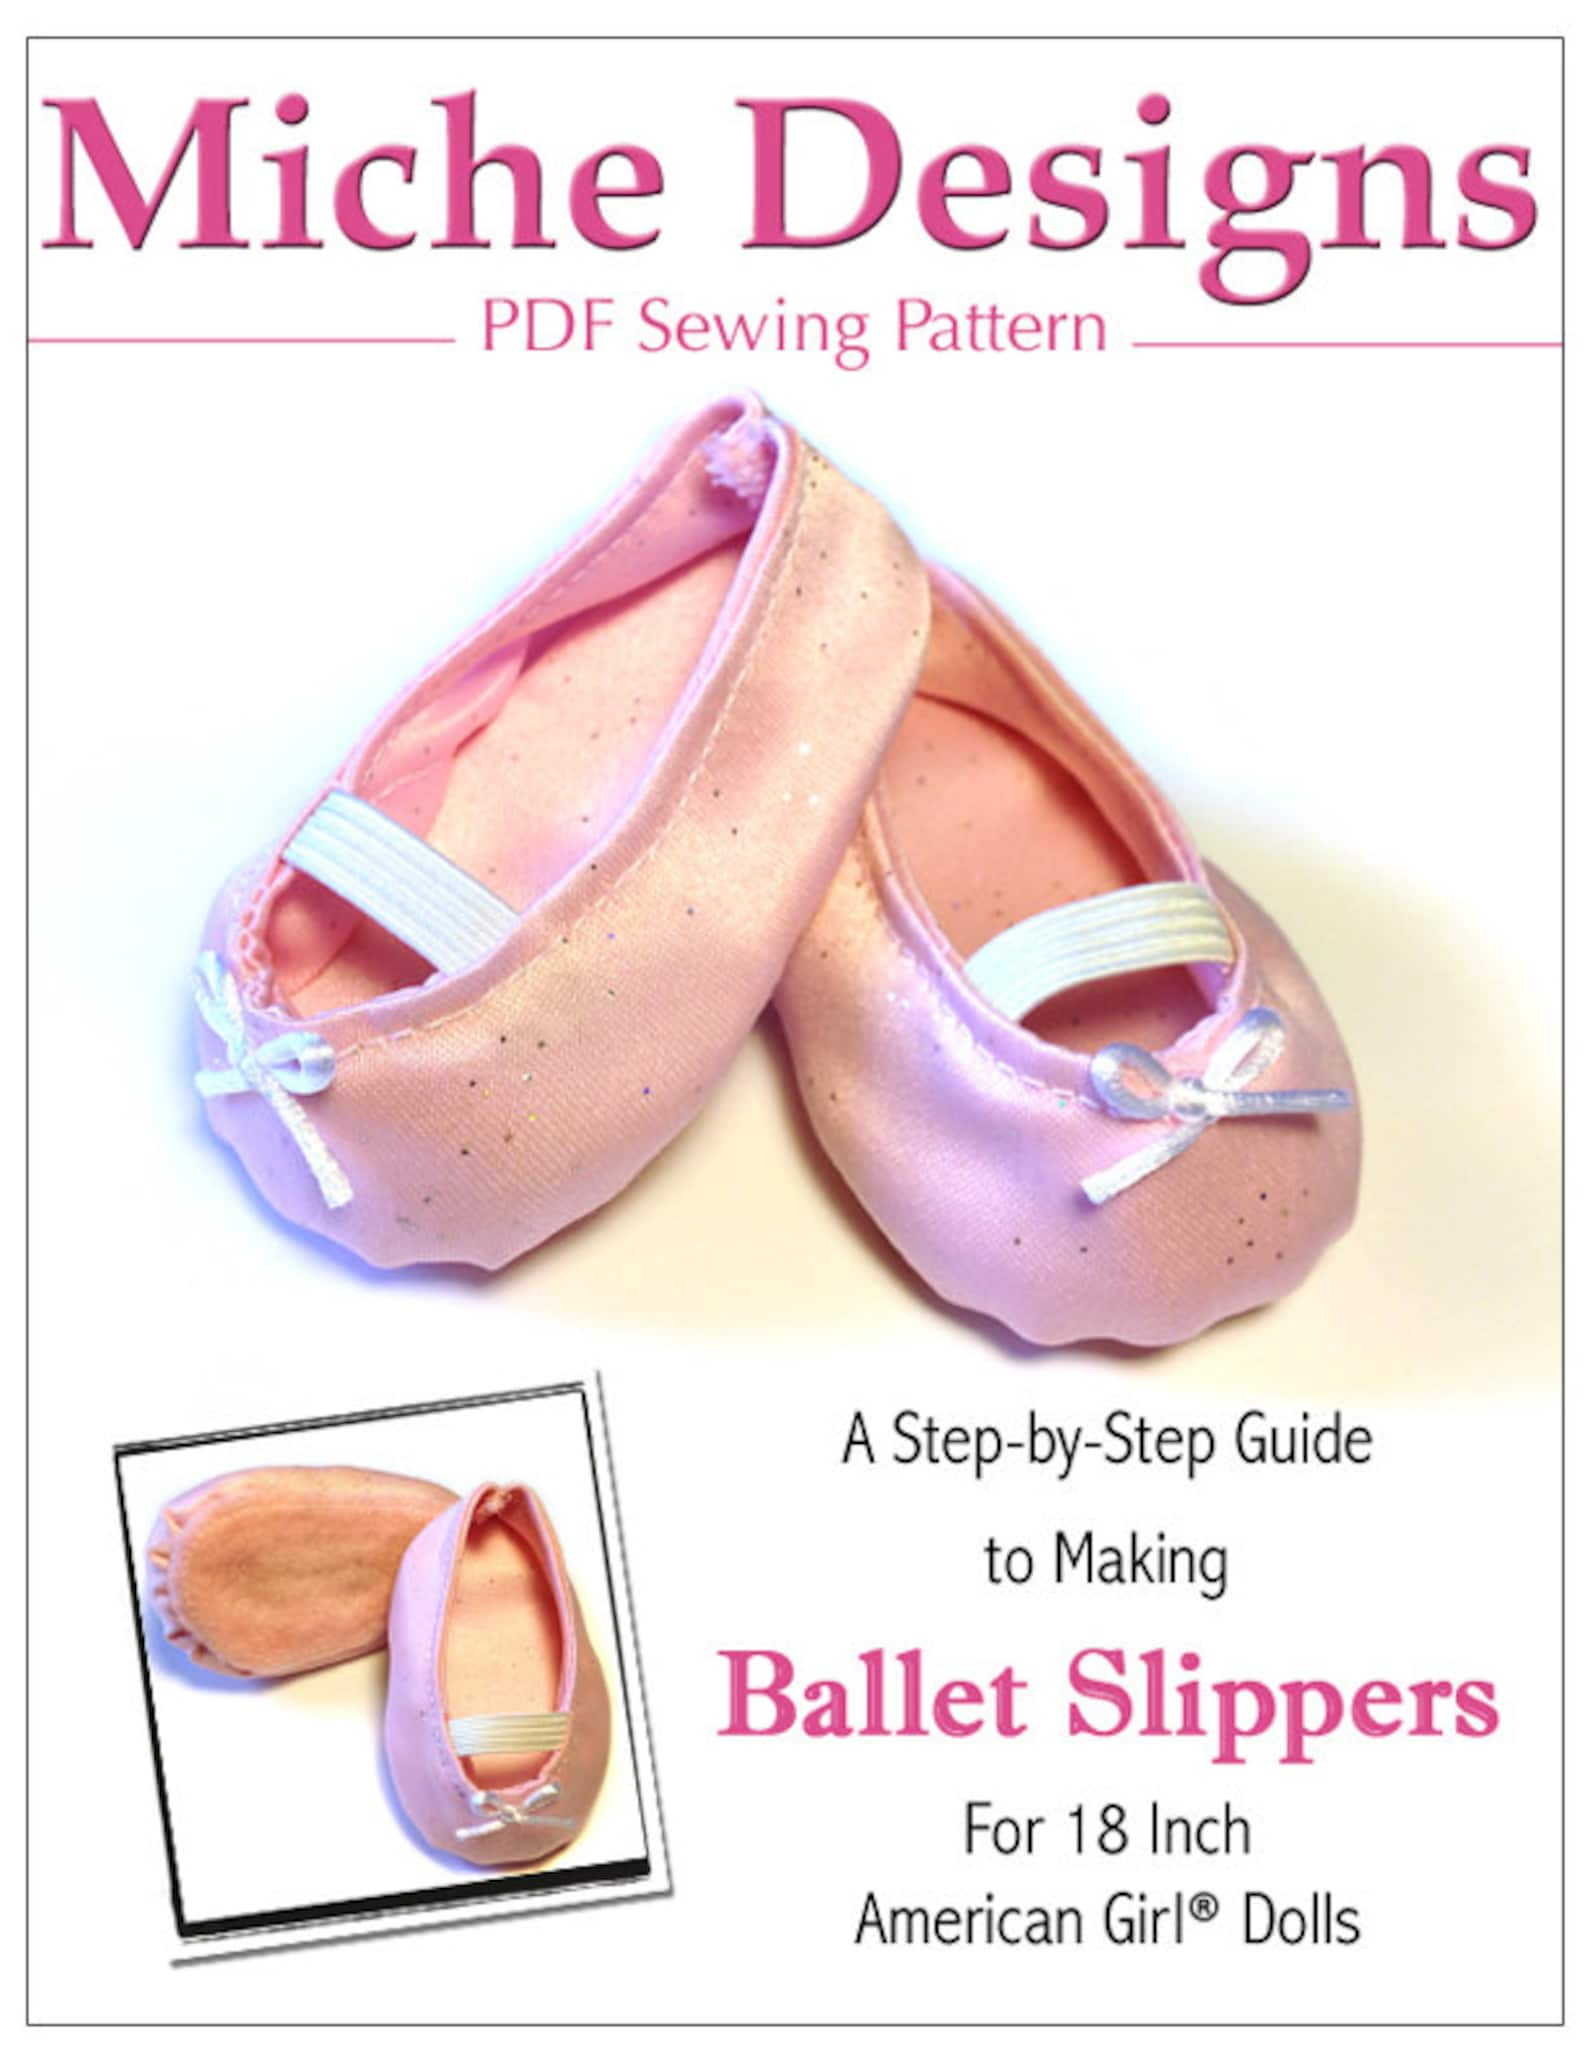 pixie faire miche designs ballet slippers shoe doll clothes pattern for 18 inch american girl dolls - pdf